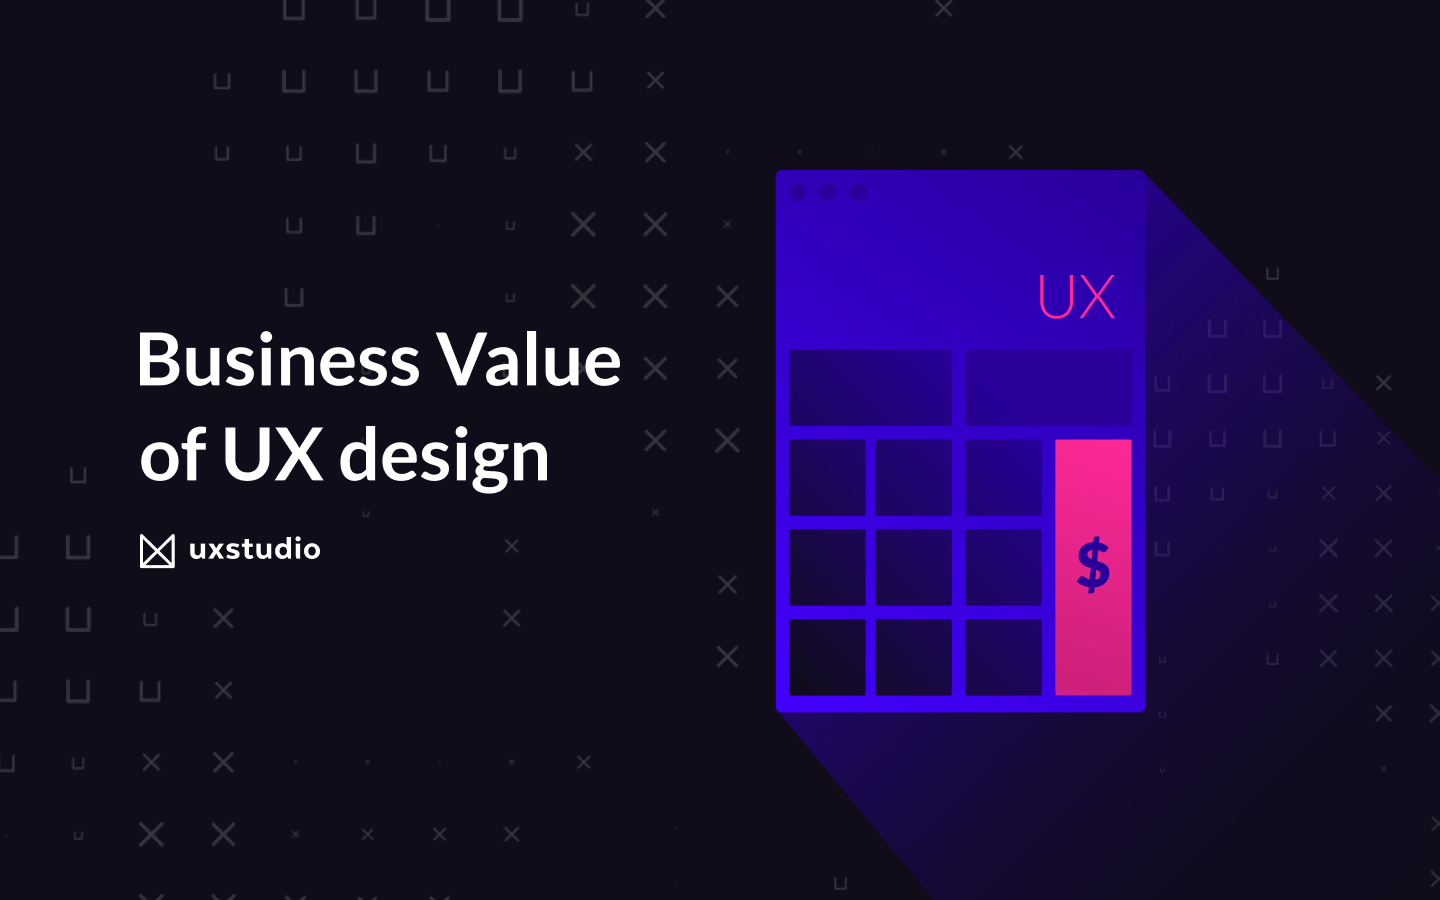 Design Roi What Is The Business Value Of Ux Design